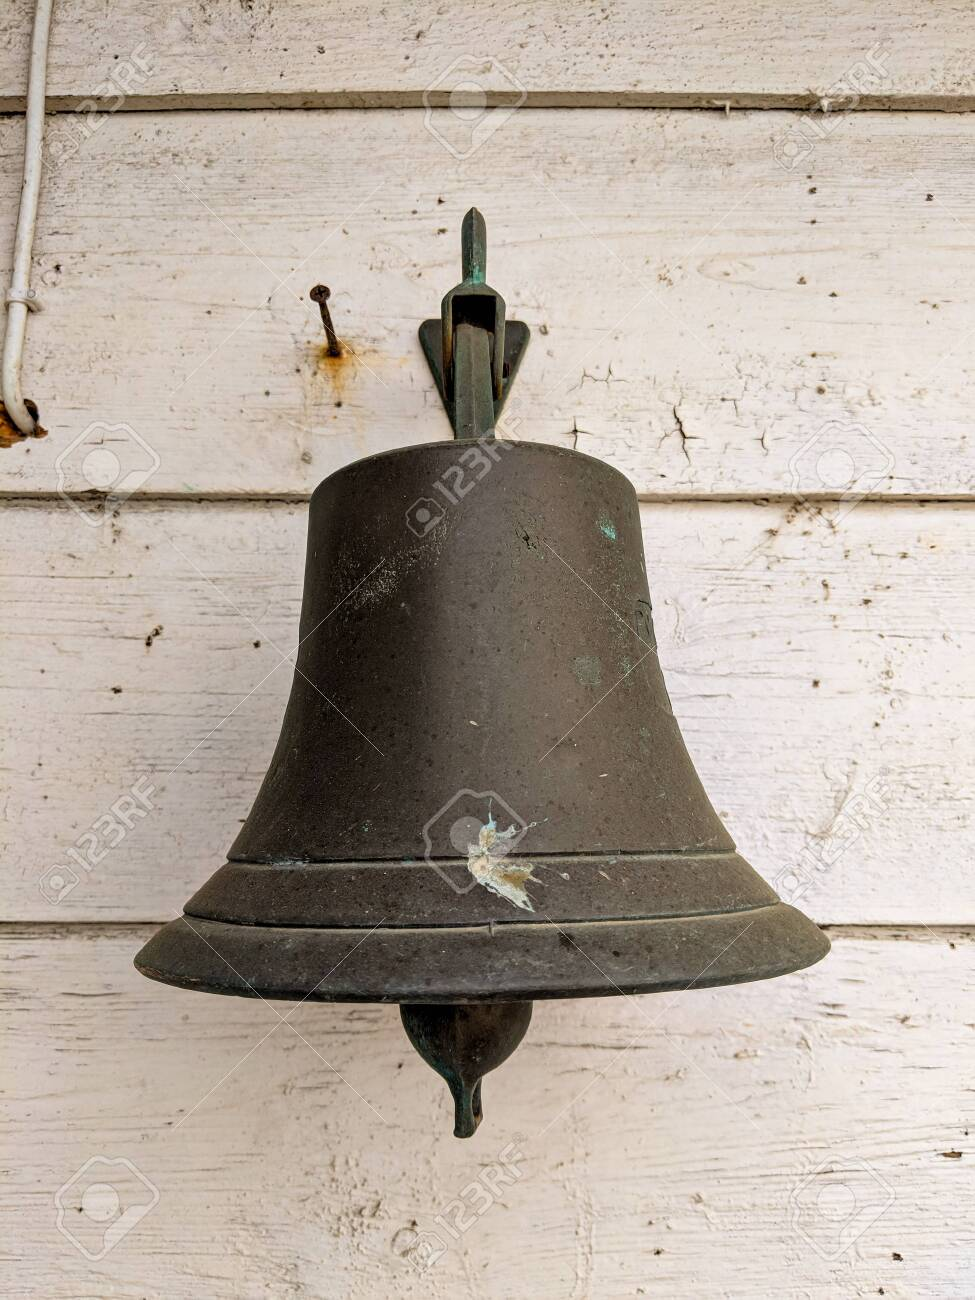 Grey large bell against a wooden old wall at the seaside - 134286096